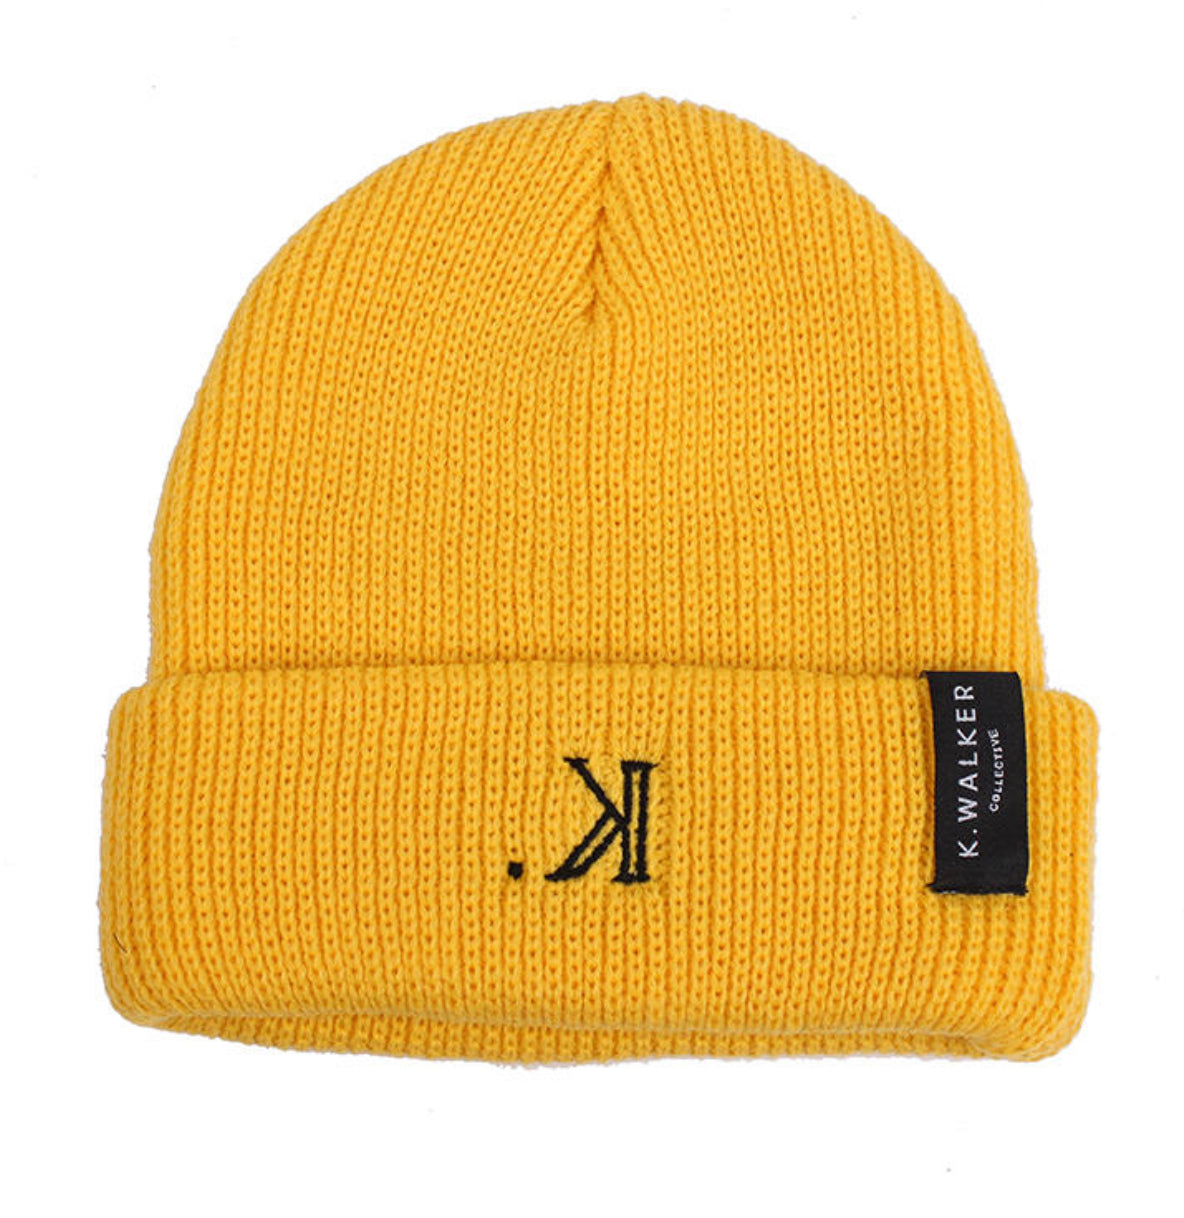 K. Signature Beanie (Yellow)